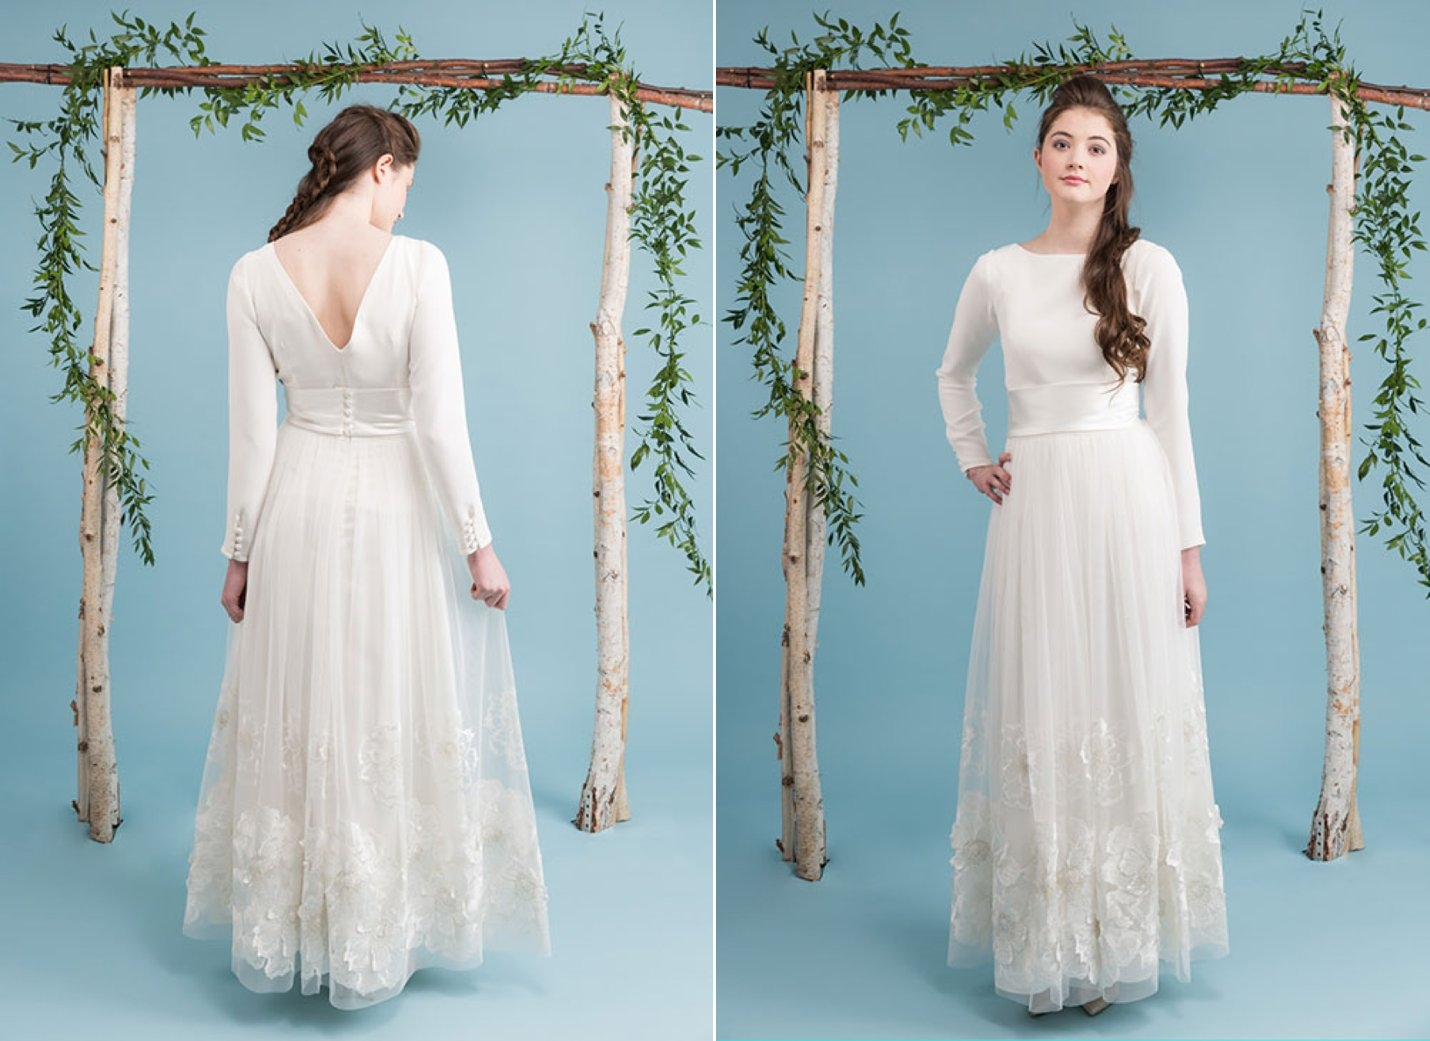 Attractive Wedding Dresses Surrey Vignette - All Wedding Dresses ...